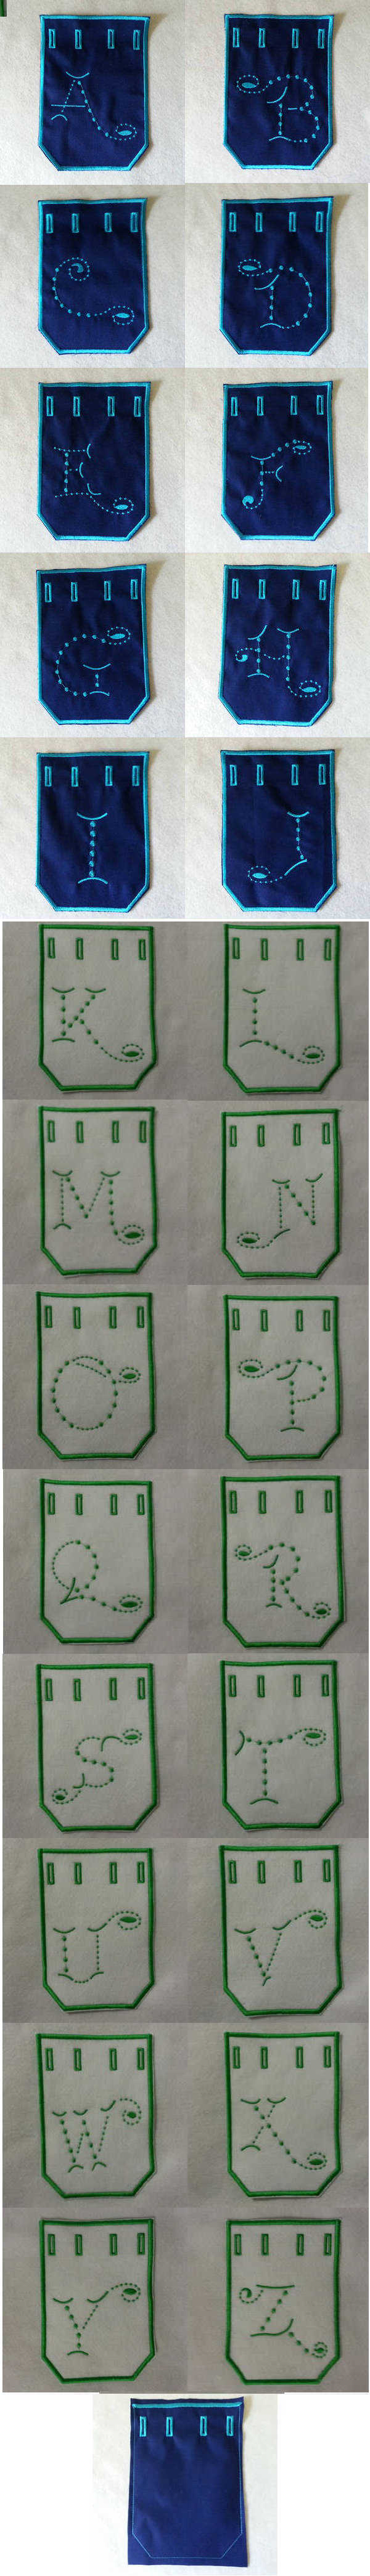 Candlewick Alpha Bags for Him Embroidery Machine Design Details